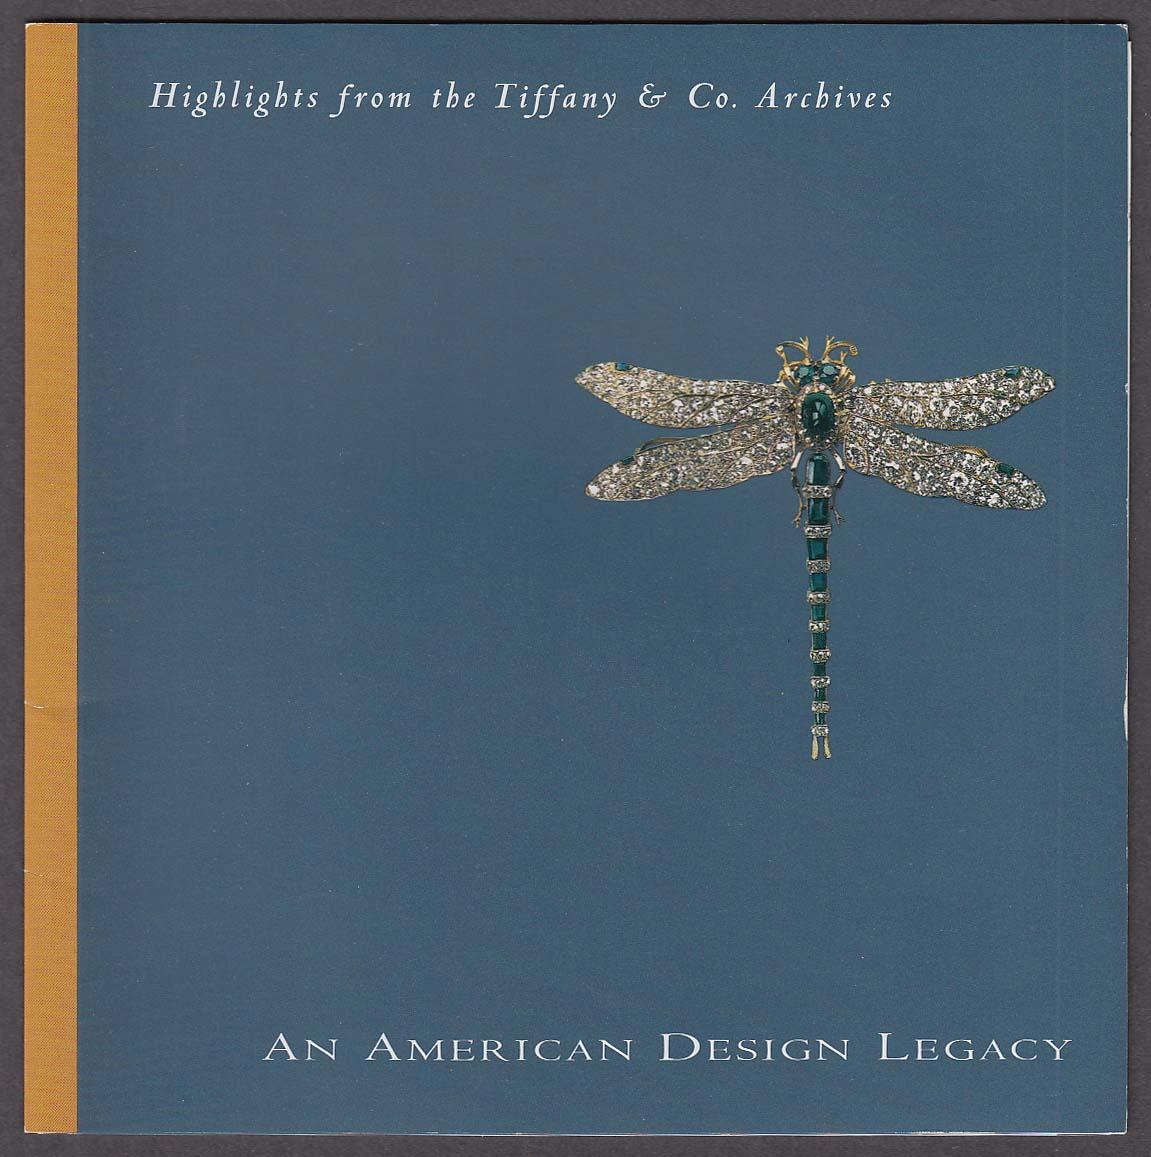 Tiffany & Co Archives Highlights American Design Legacy folder